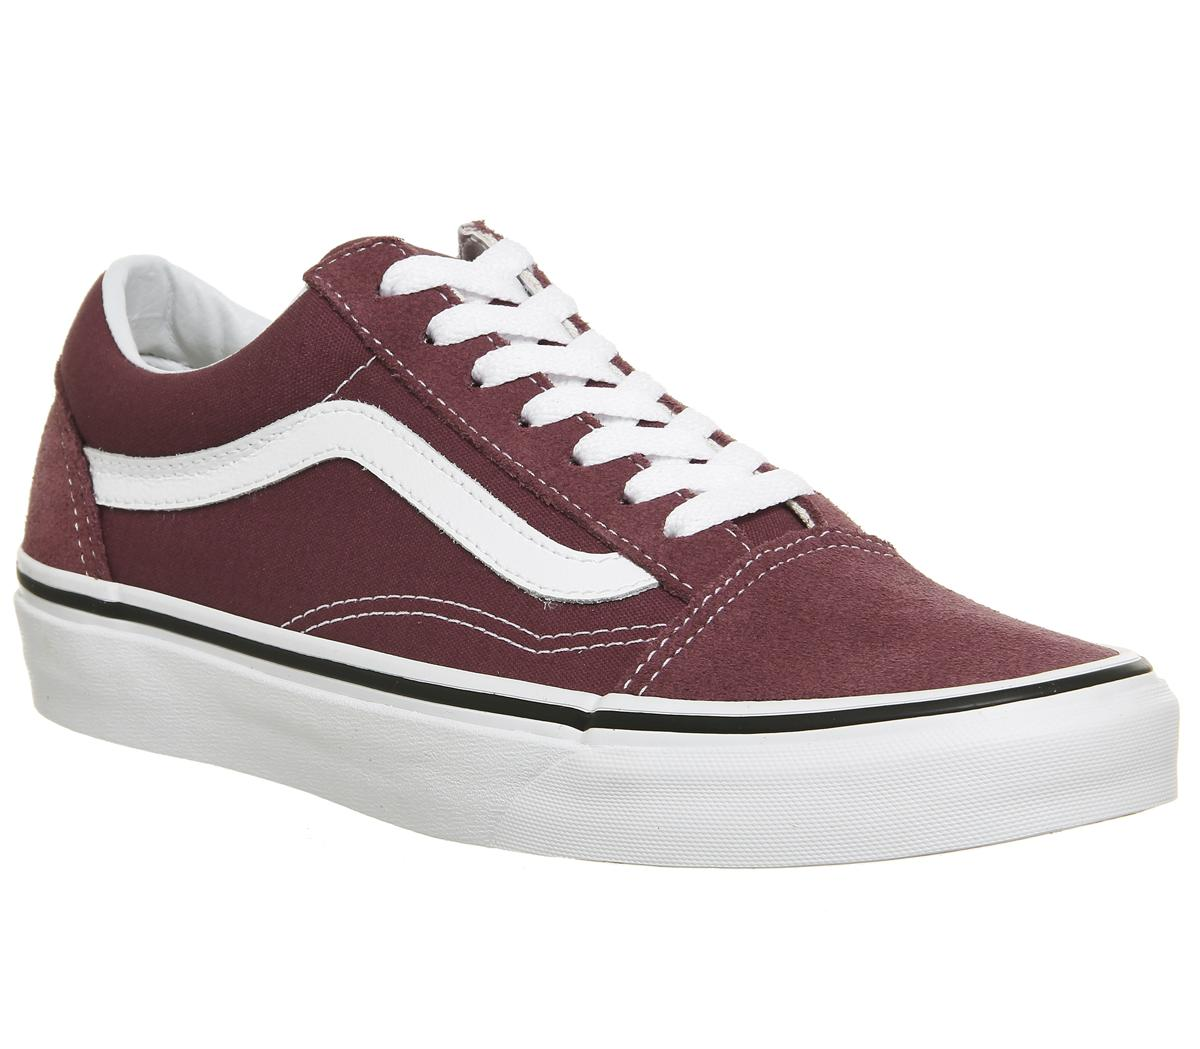 4c643929127f Vans Old Skool Trainers Apple Butter True White - Unisex Sports